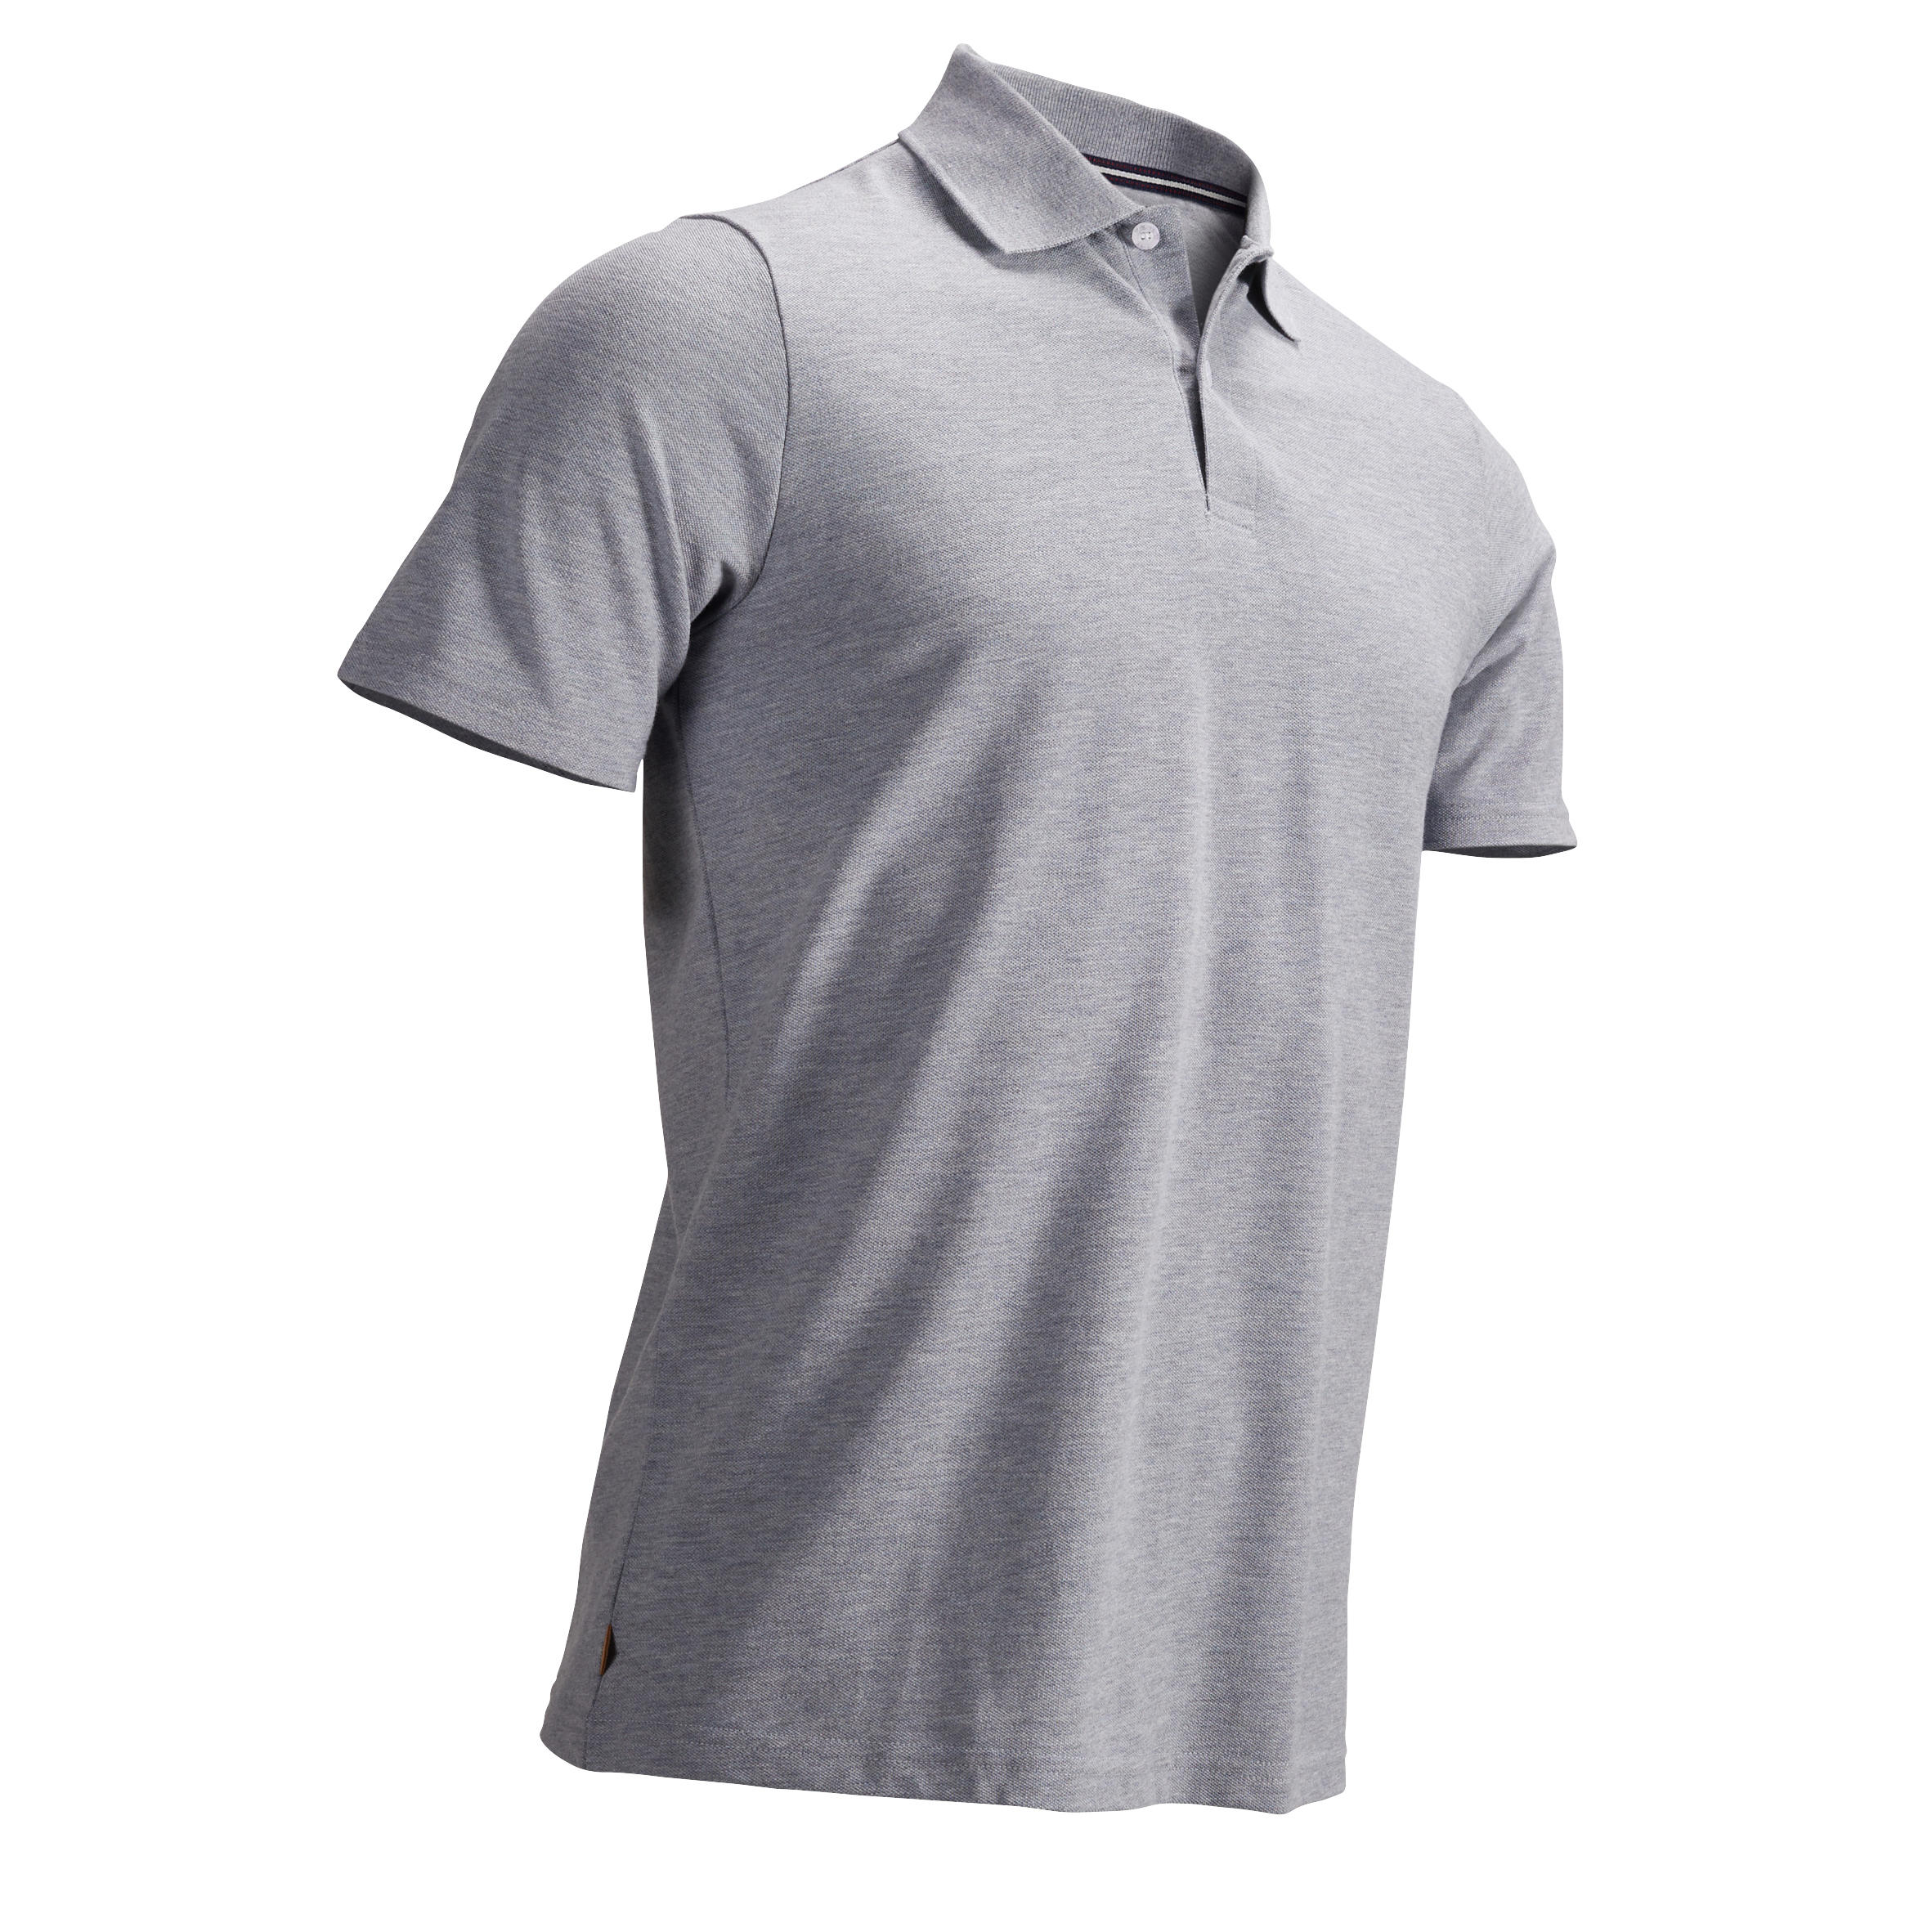 Men's Golf Polo T-Shirt 500 Heather Grey